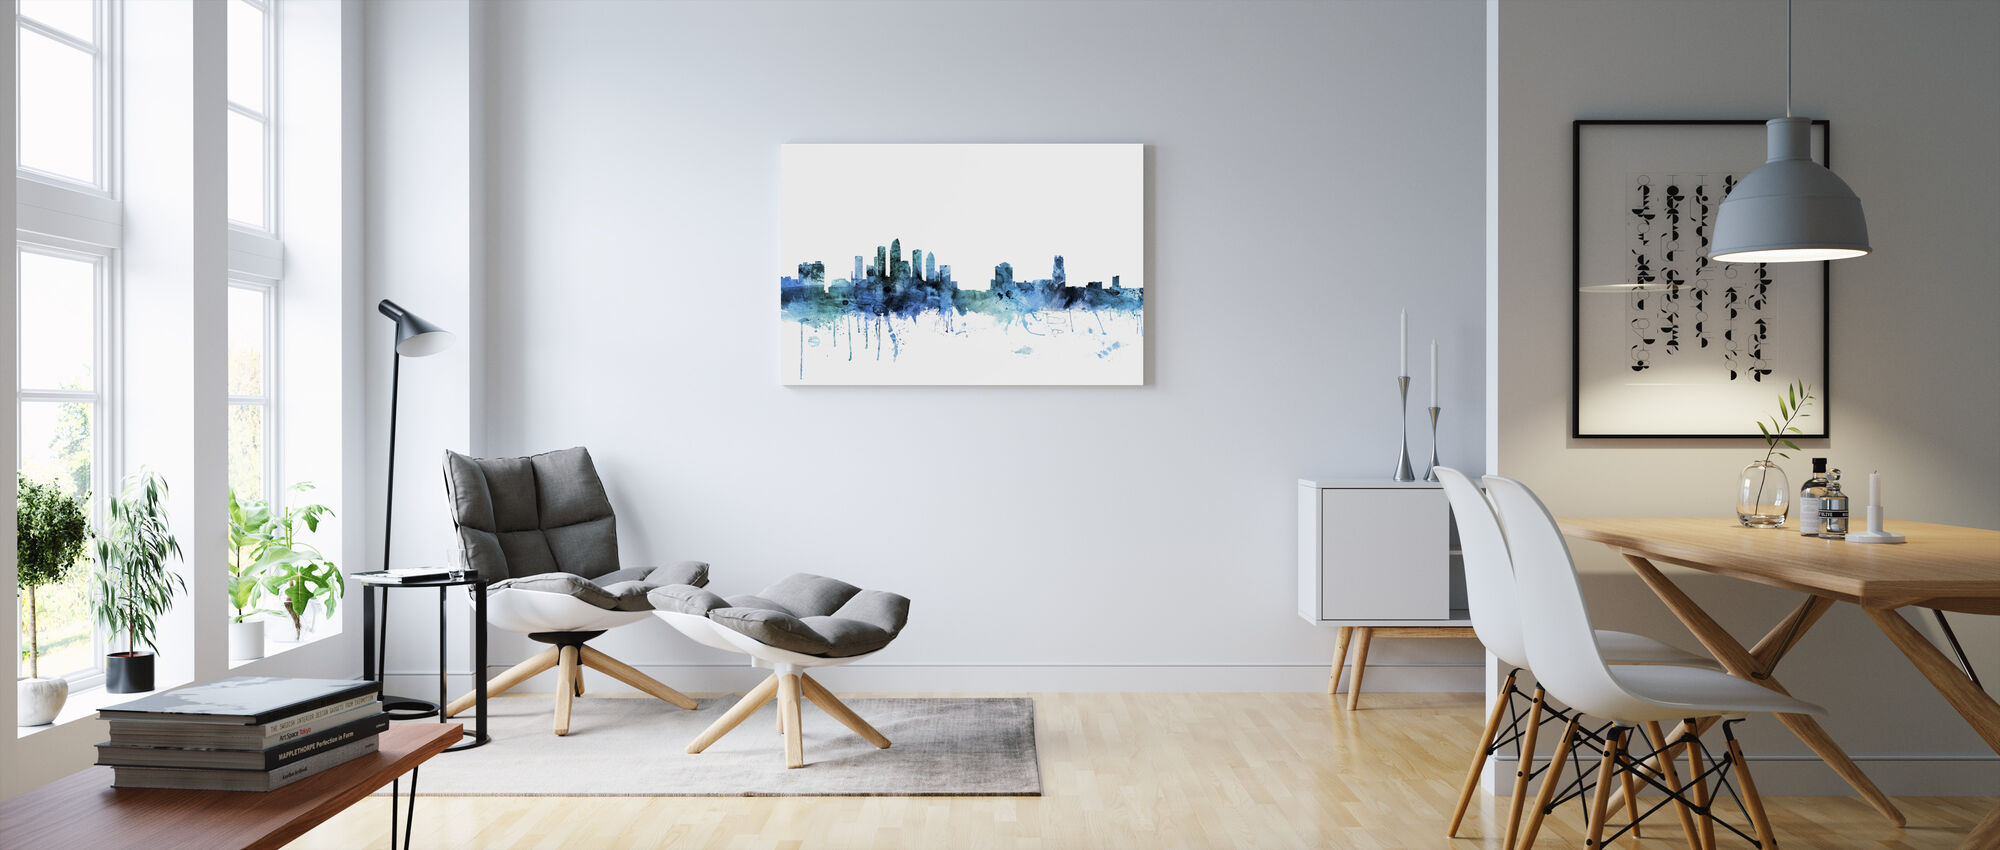 Tampa Florida Skyline - Canvas print - Living Room